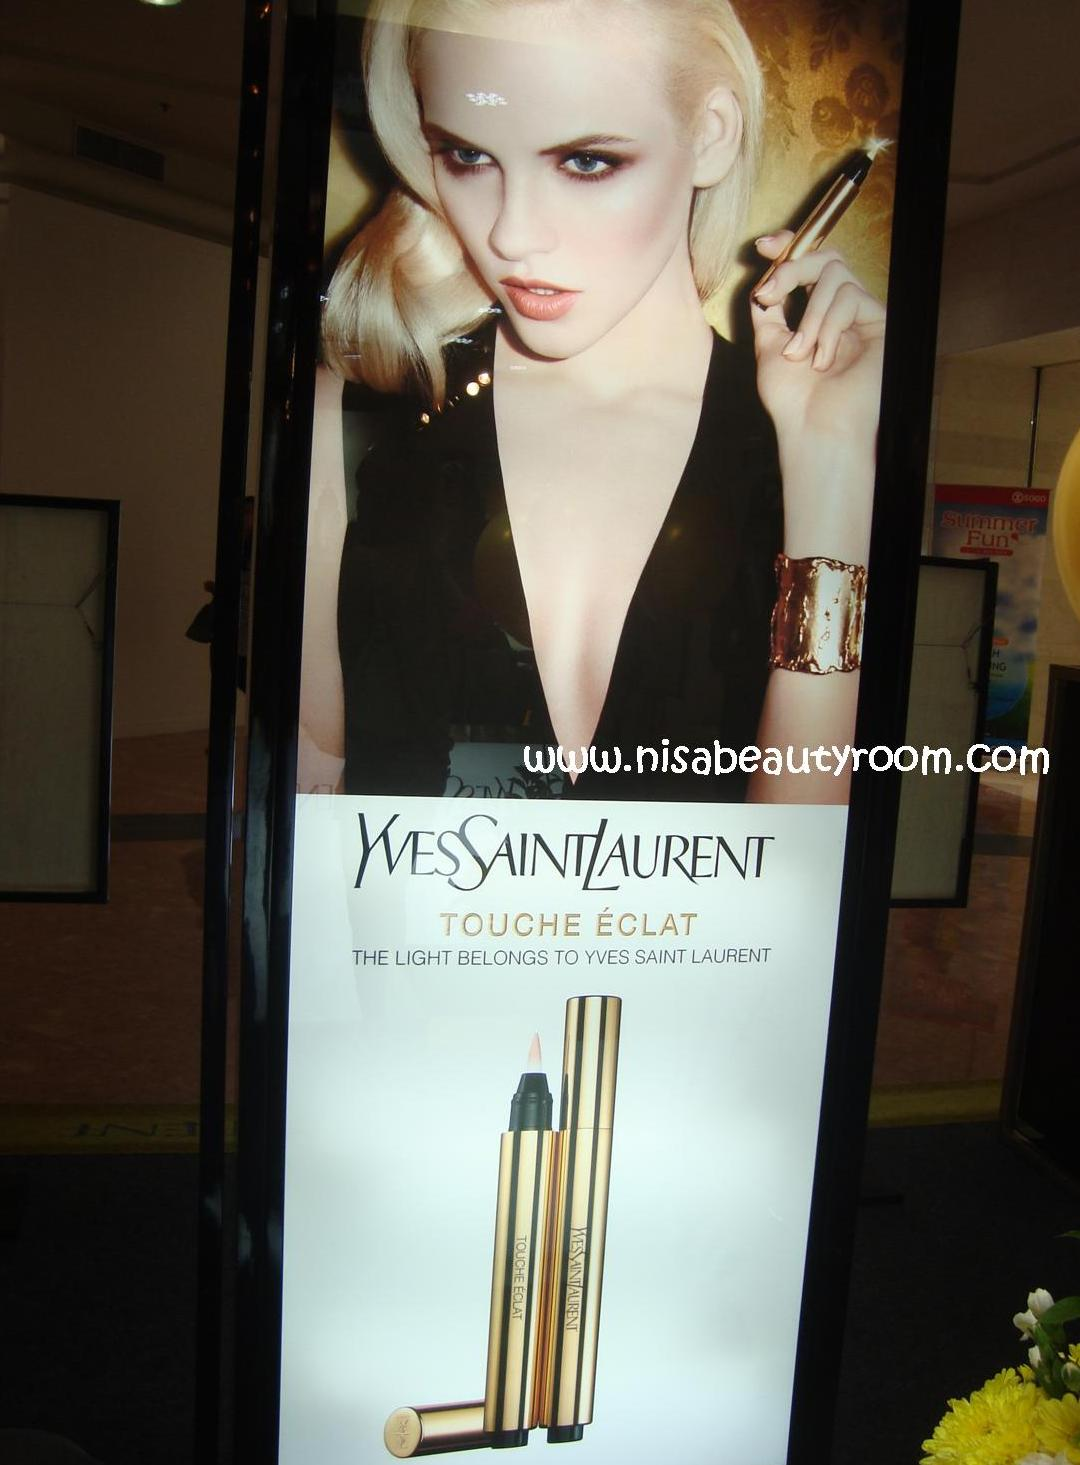 20 Years Yves Saint Laurent Touche Eclat event